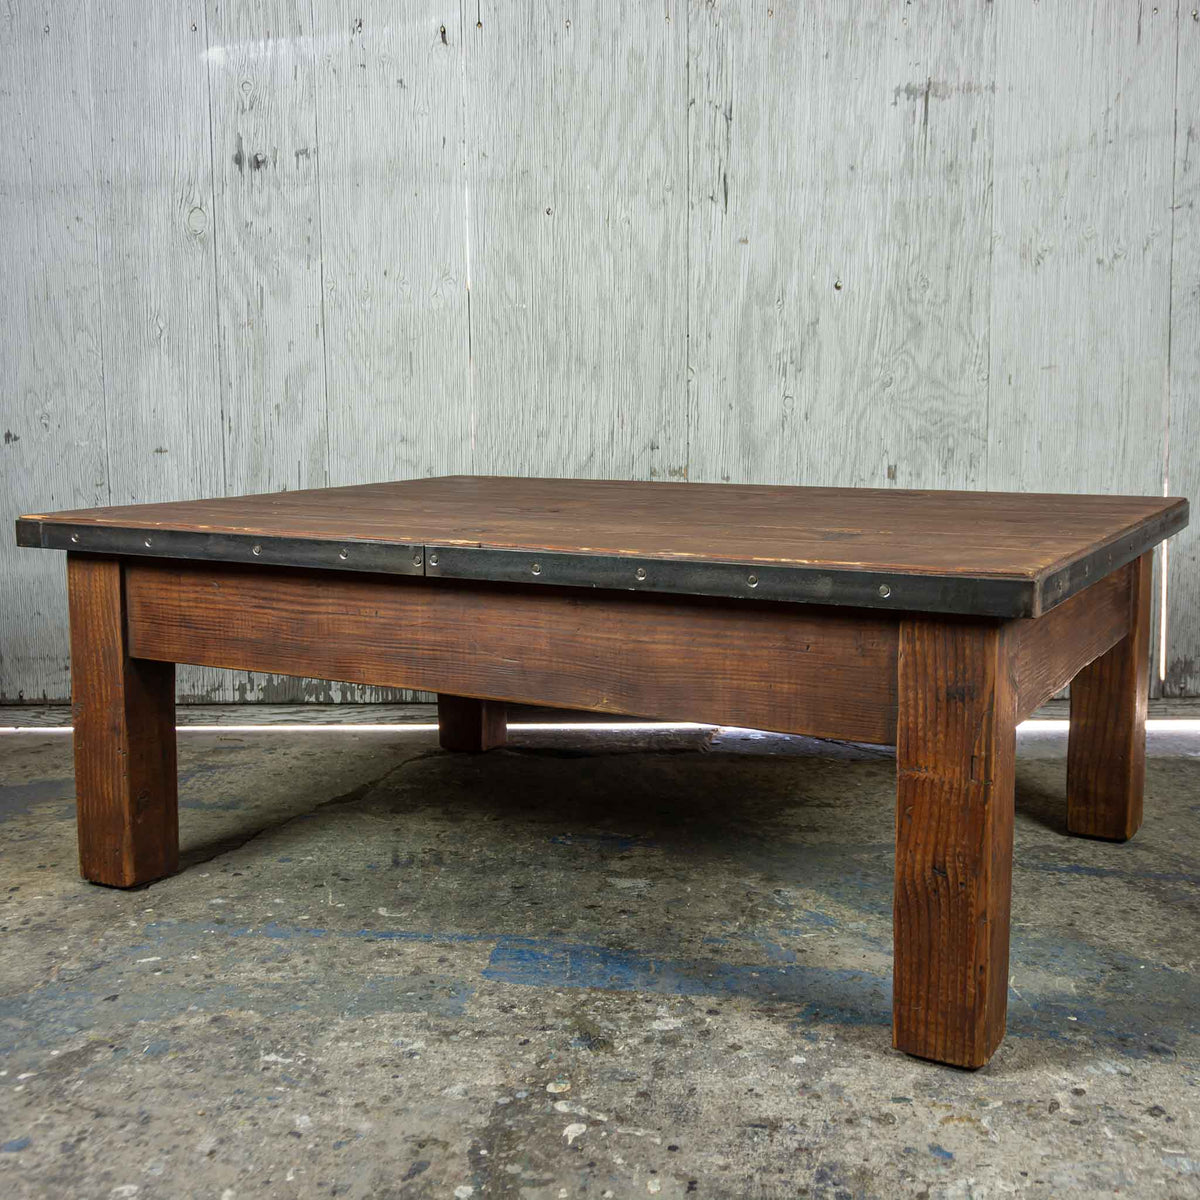 Medium Natural Coffee Table - Brighams Furniture